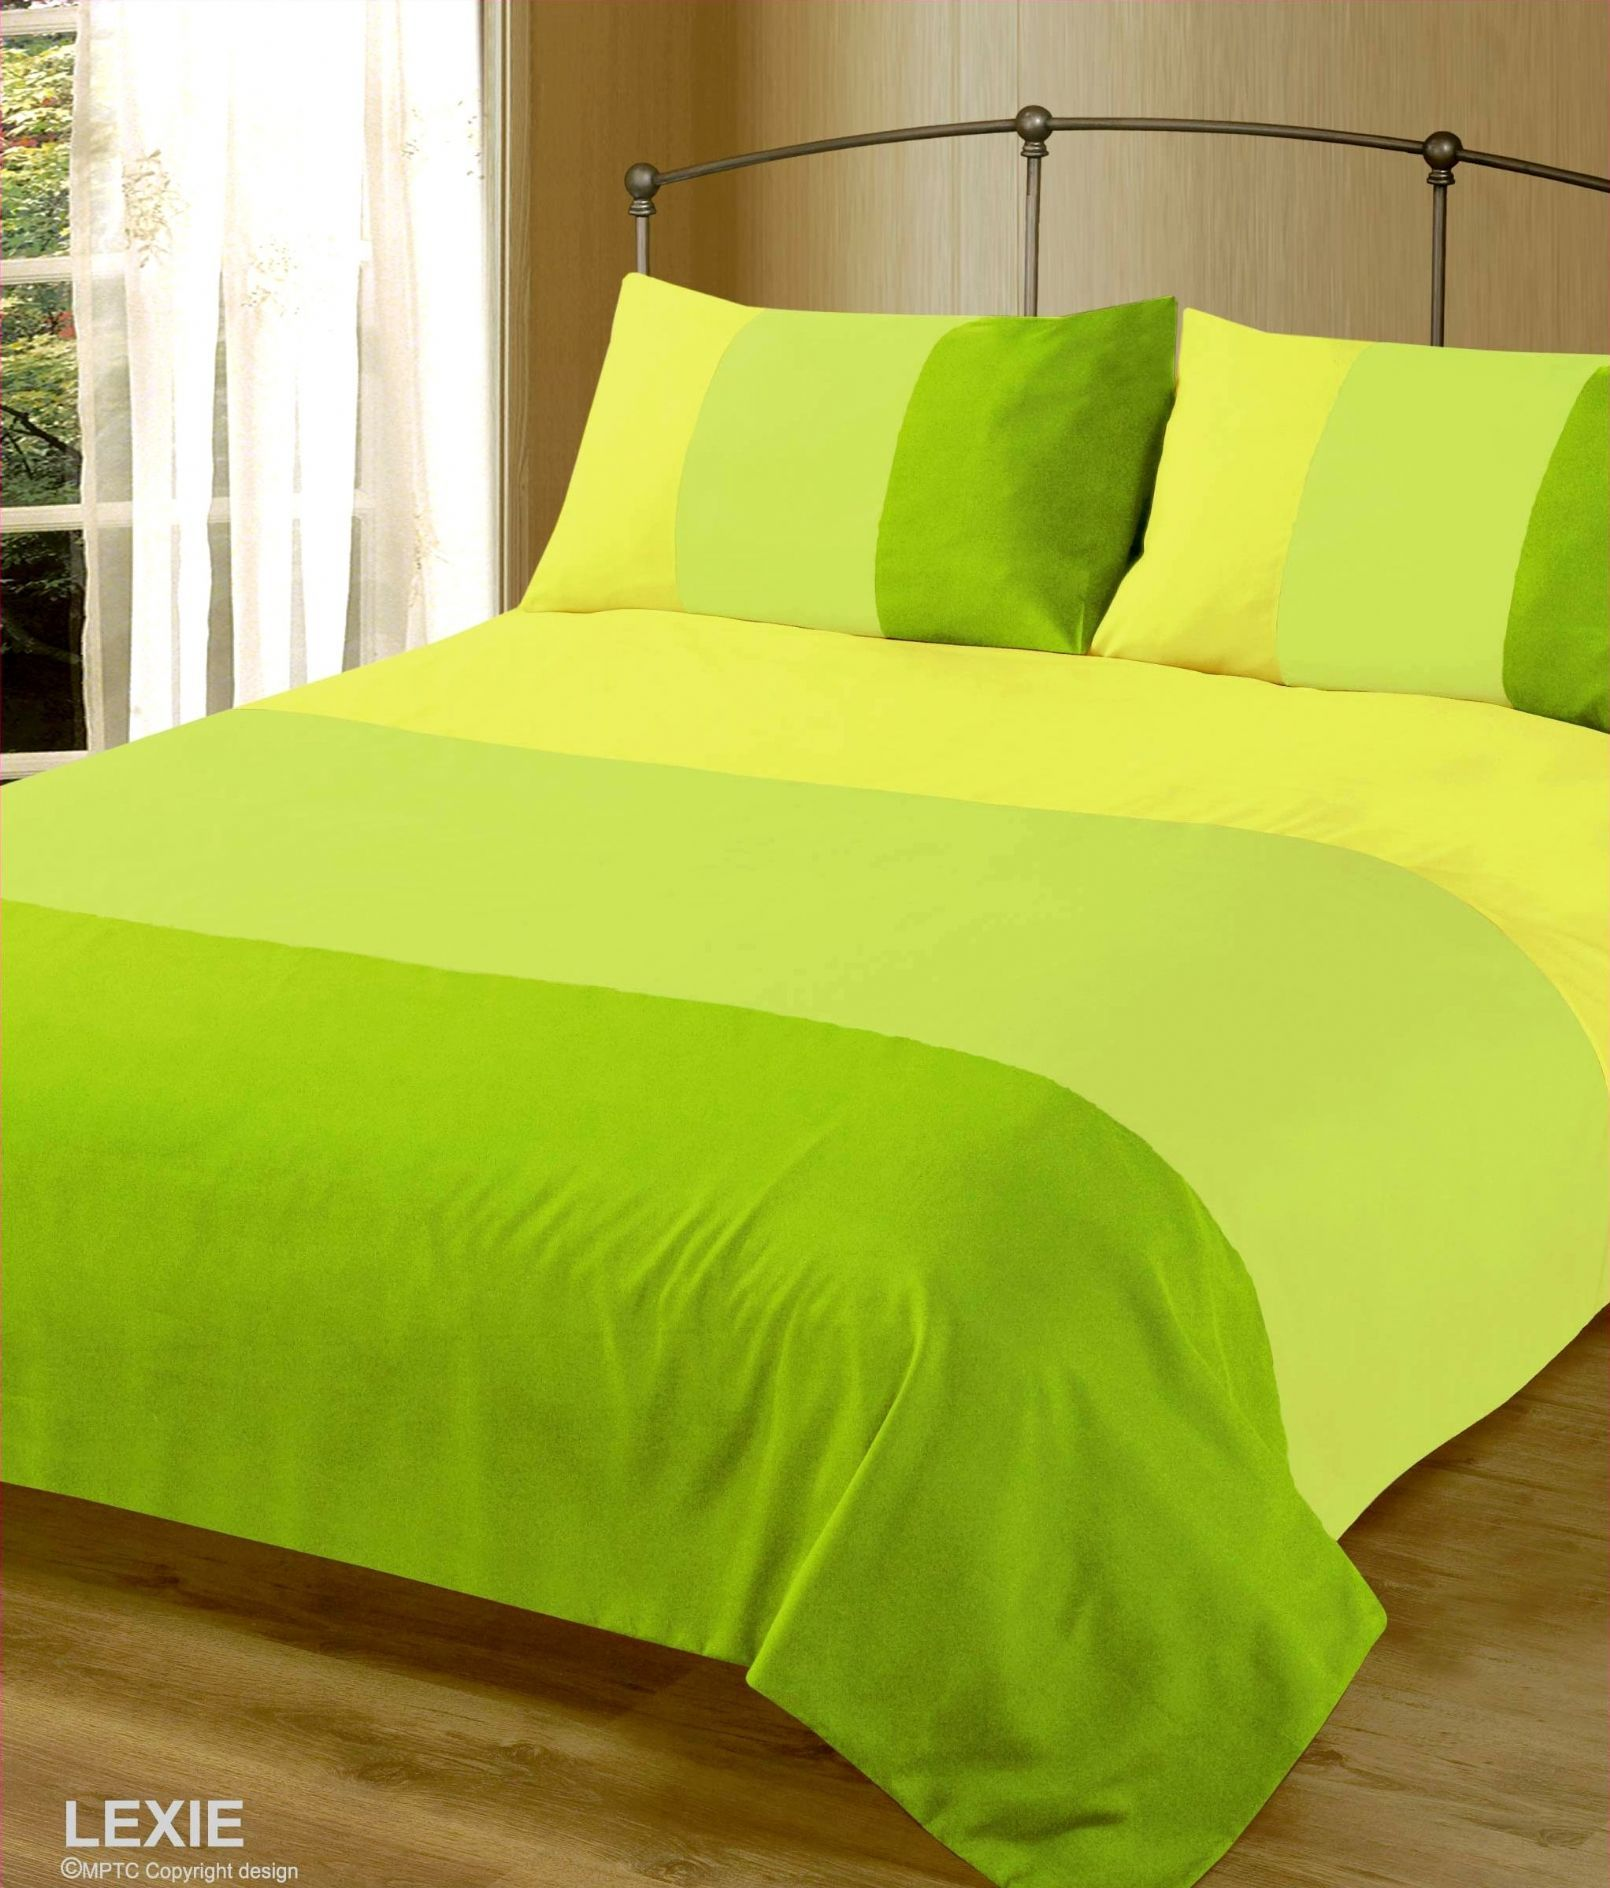 Green bedding set - Lime Green Bedding Sets Lime Green Duvet Cover Microfiber Bedding Set